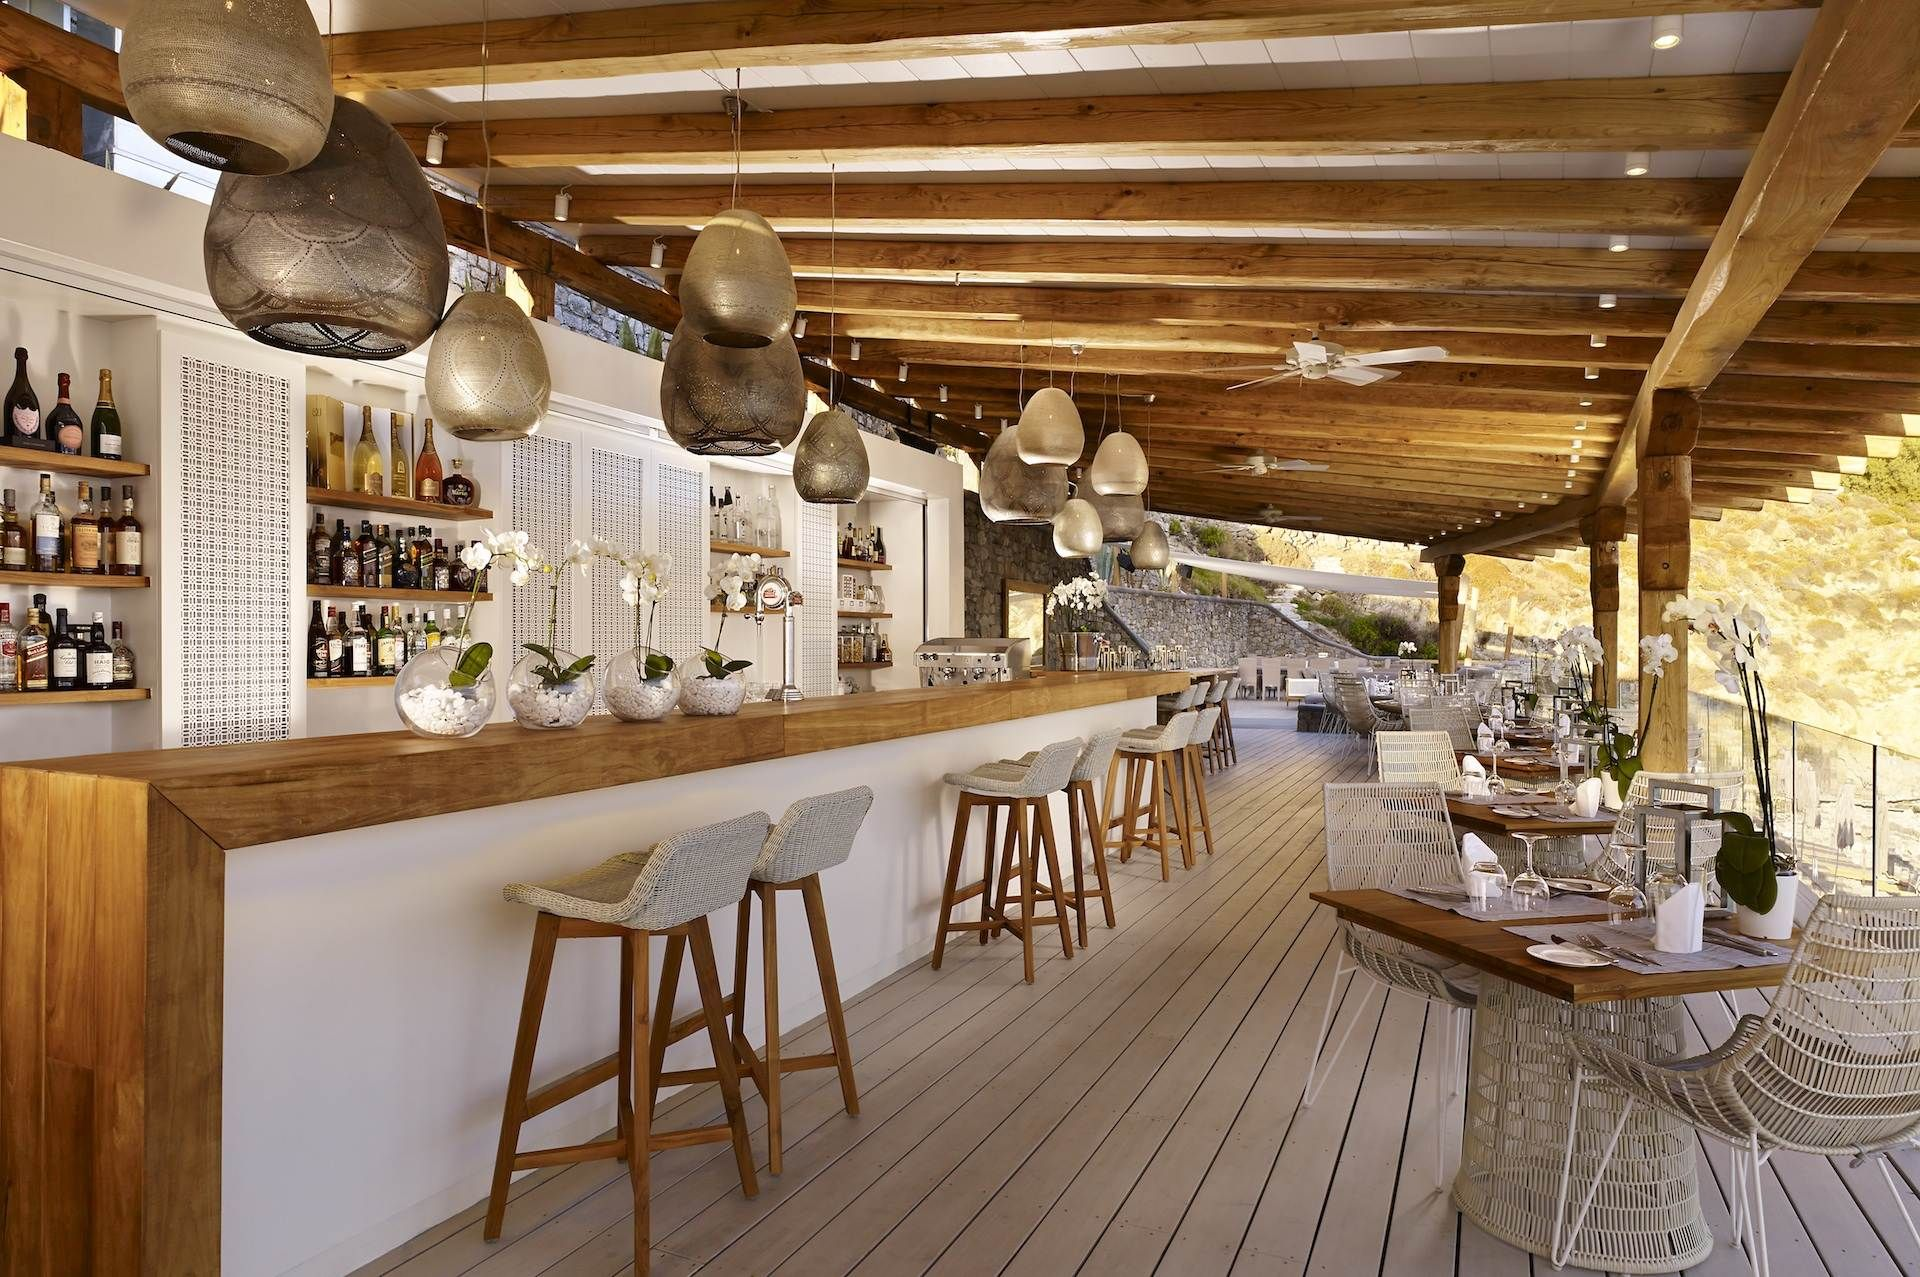 majestic office coffee bar. Beach Restaurant Bay View  Experience a hip beach restaurant in majestic seaside environment that